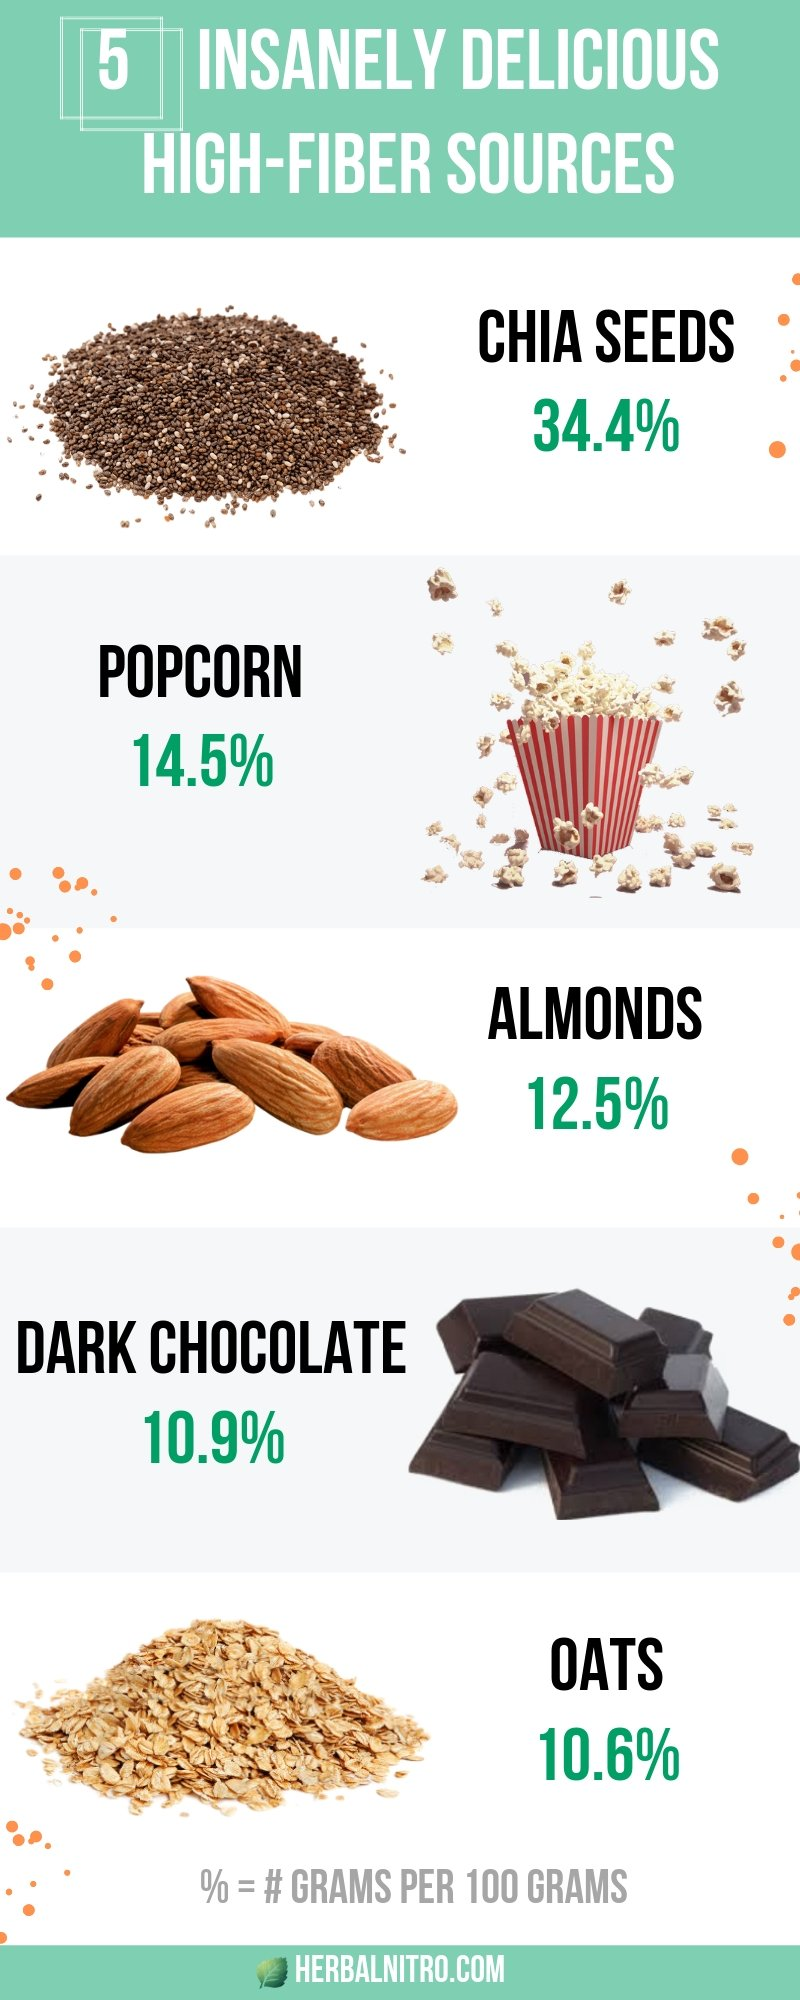 5 insanely delicious high-fiber food sources